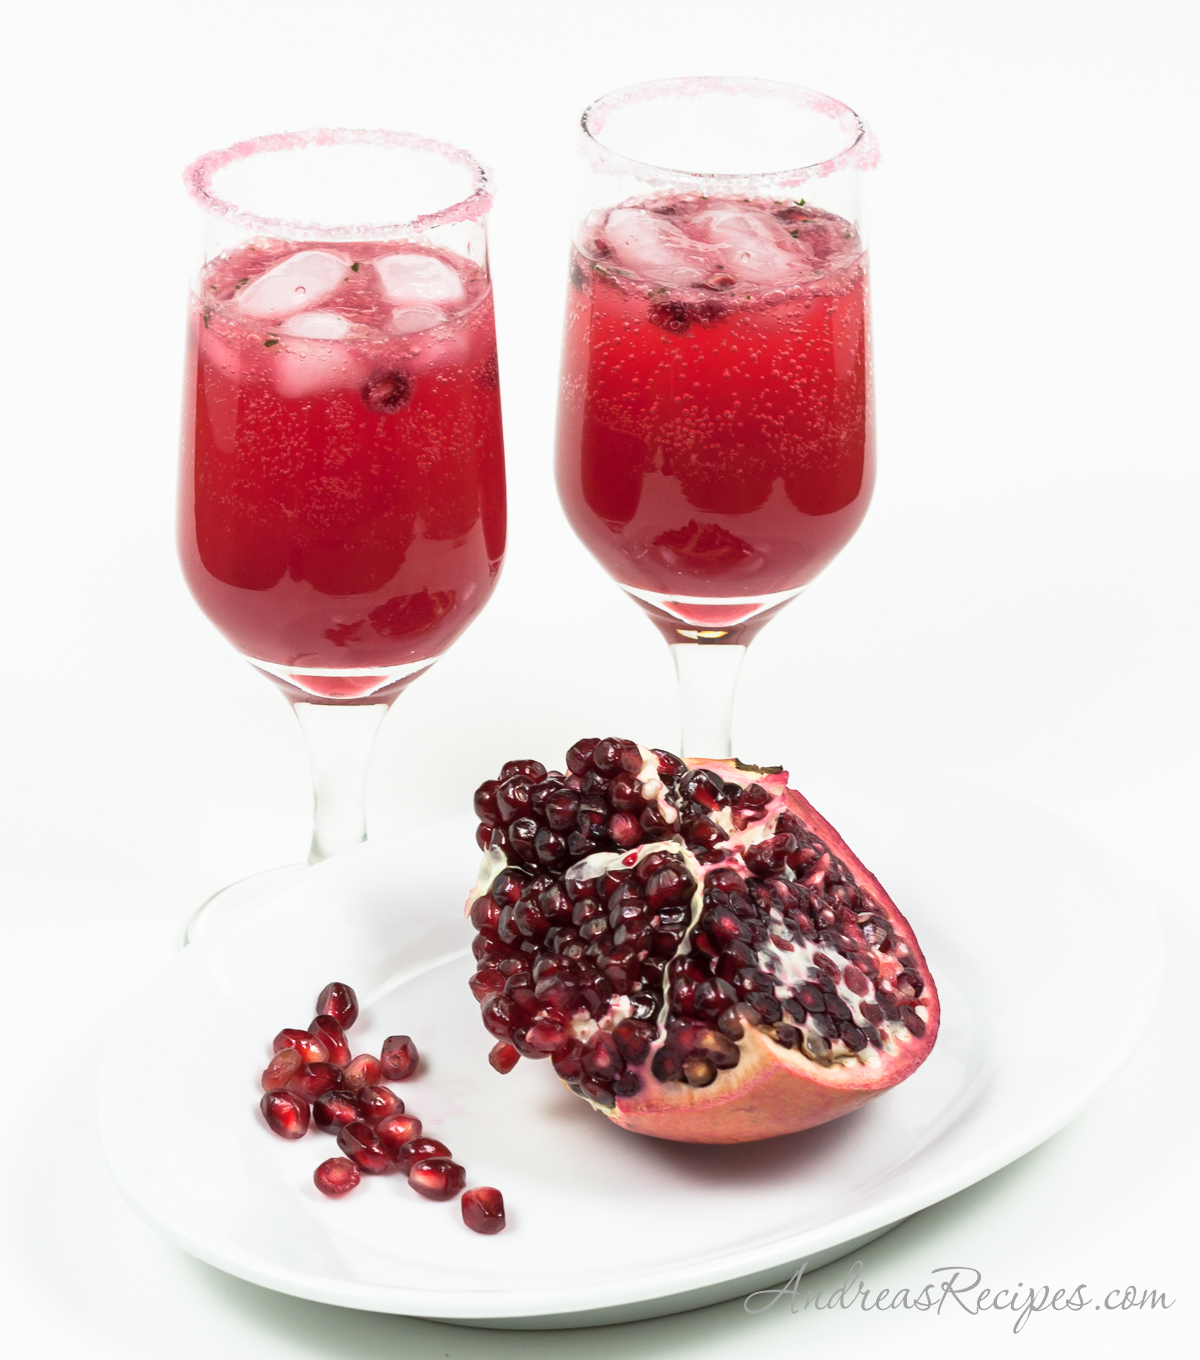 Pomegranate-Ginger-Chile Nojito Cocktail - Andrea Meyers